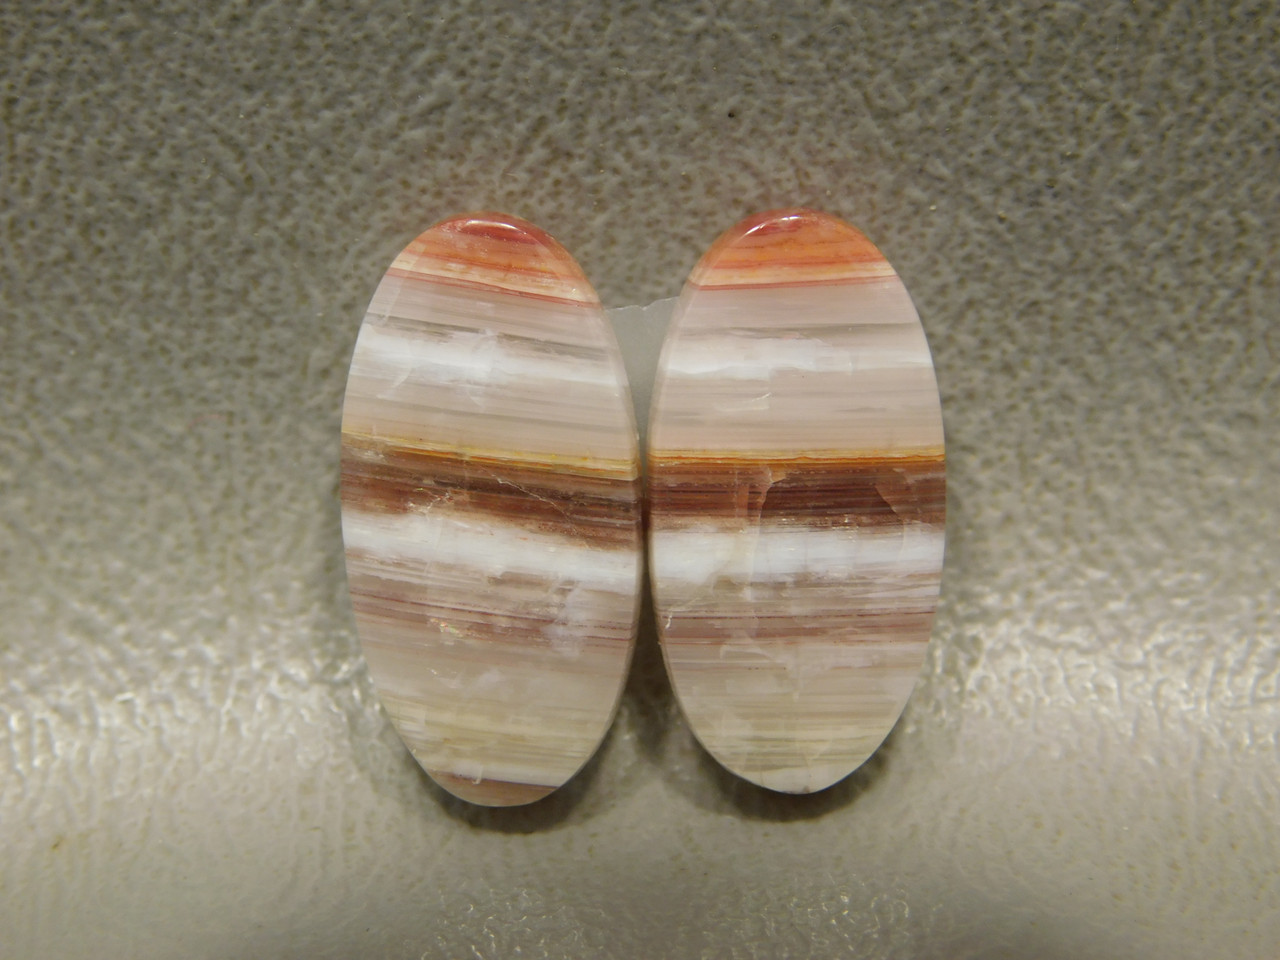 Bubble Bacon Opal Matched Pair Small Cabochon Stones #19